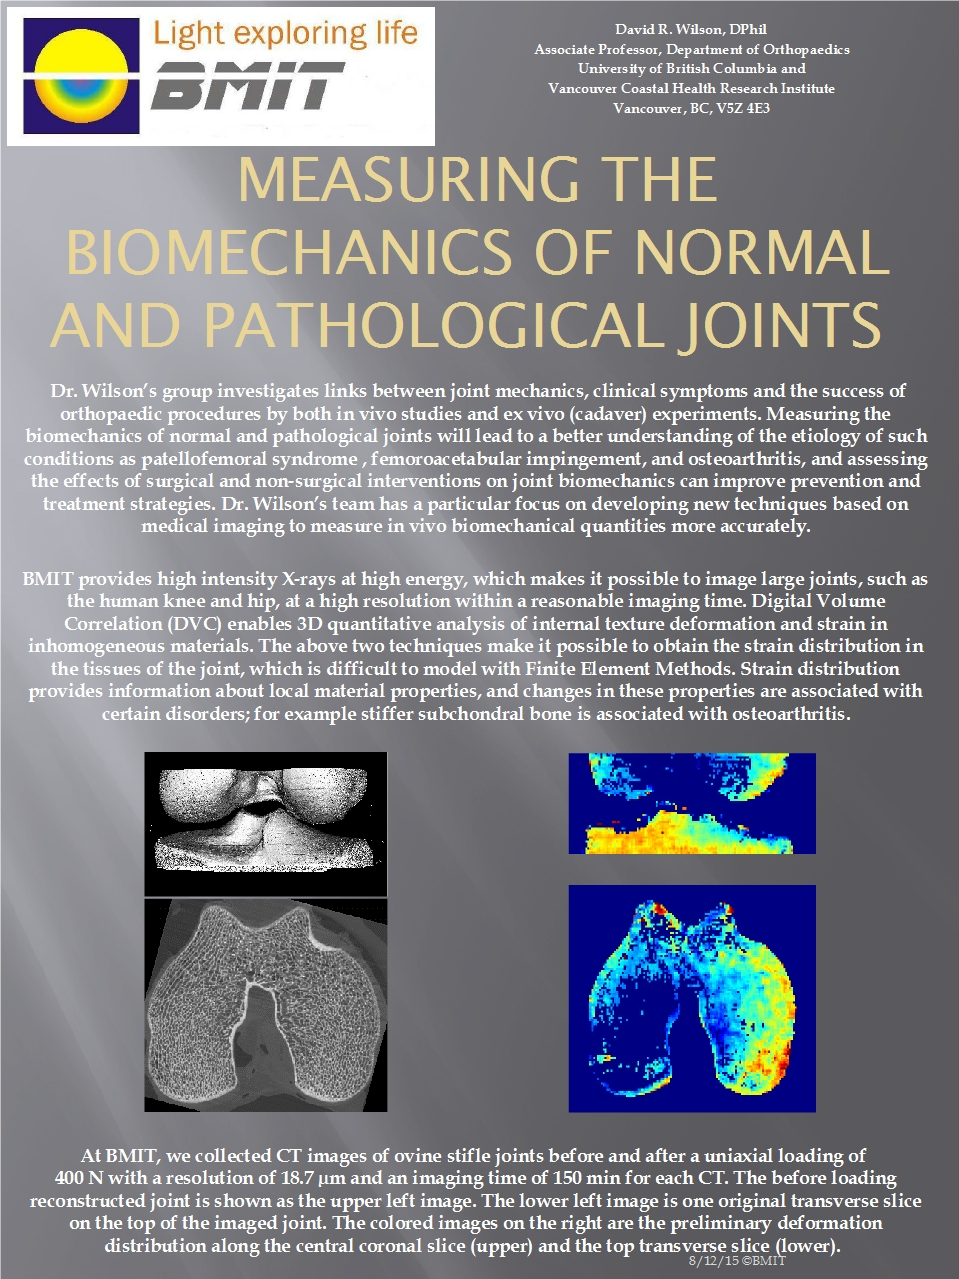 Measuring the Biomechanics of Normal and Pathological Joints Image